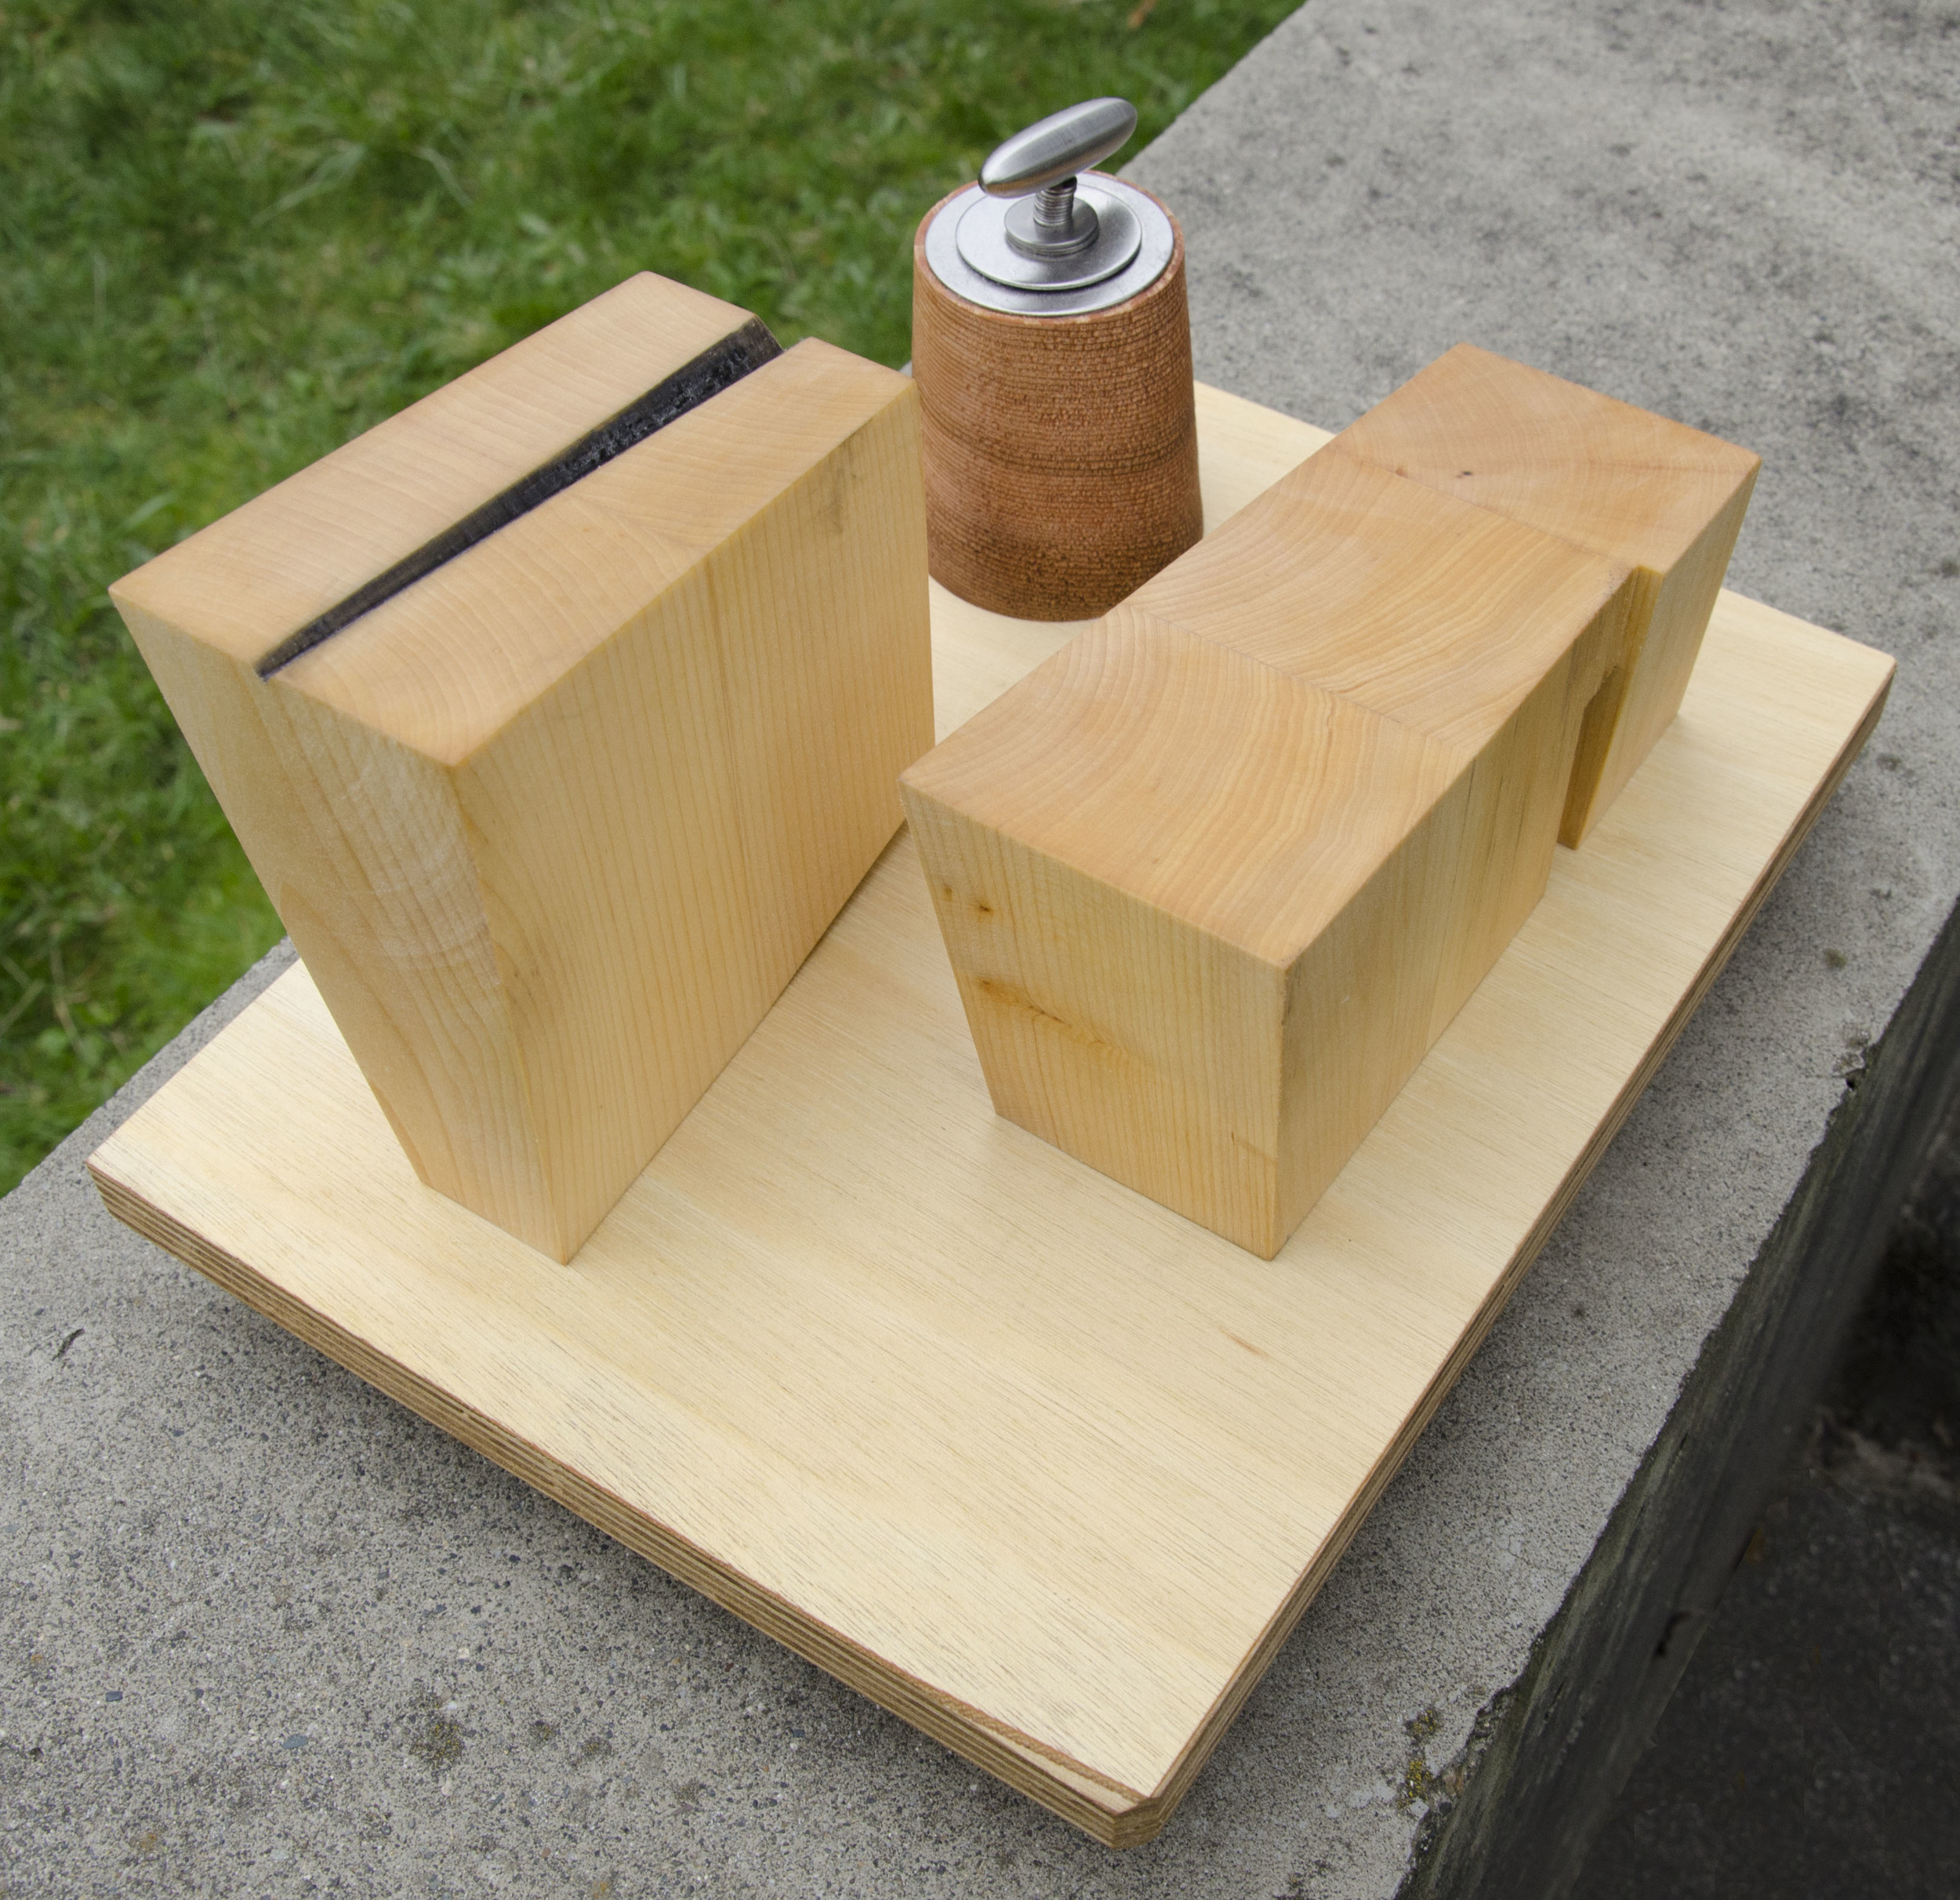 Multi lam plywood base with scrap wood runners below.  Cedar machine base, stainless steel washers and lozenge with hidden brazed rod epoxied into cedar, basswood buildings, carbon applied to notch cut into one building for beam rail path into space. Maybe for measuring the space/time continuum?  7 x 12 x 6.25h inches.